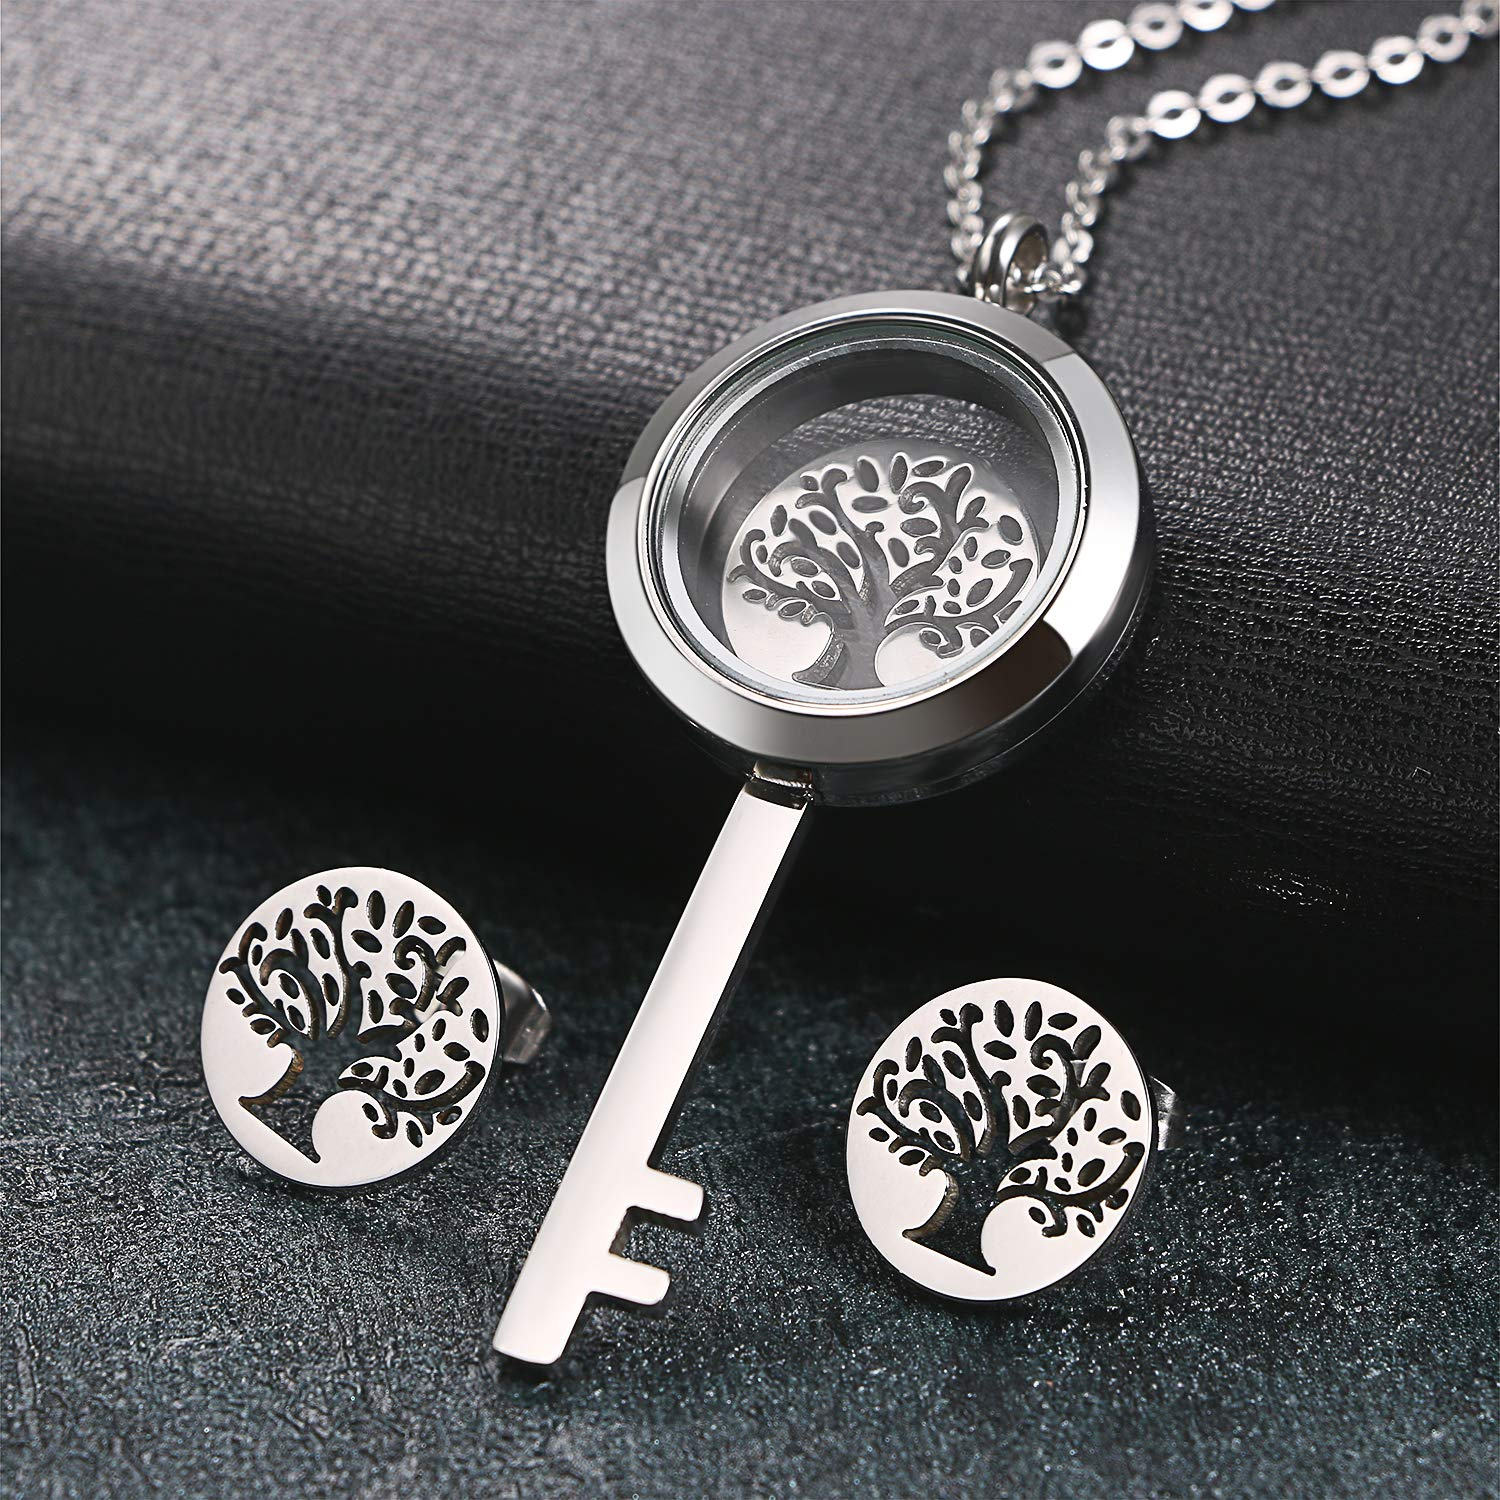 Aroncent Stainless Tree of Life Necklace Earrings Set Steel Chain Pendant Earrings Studs Jewelry